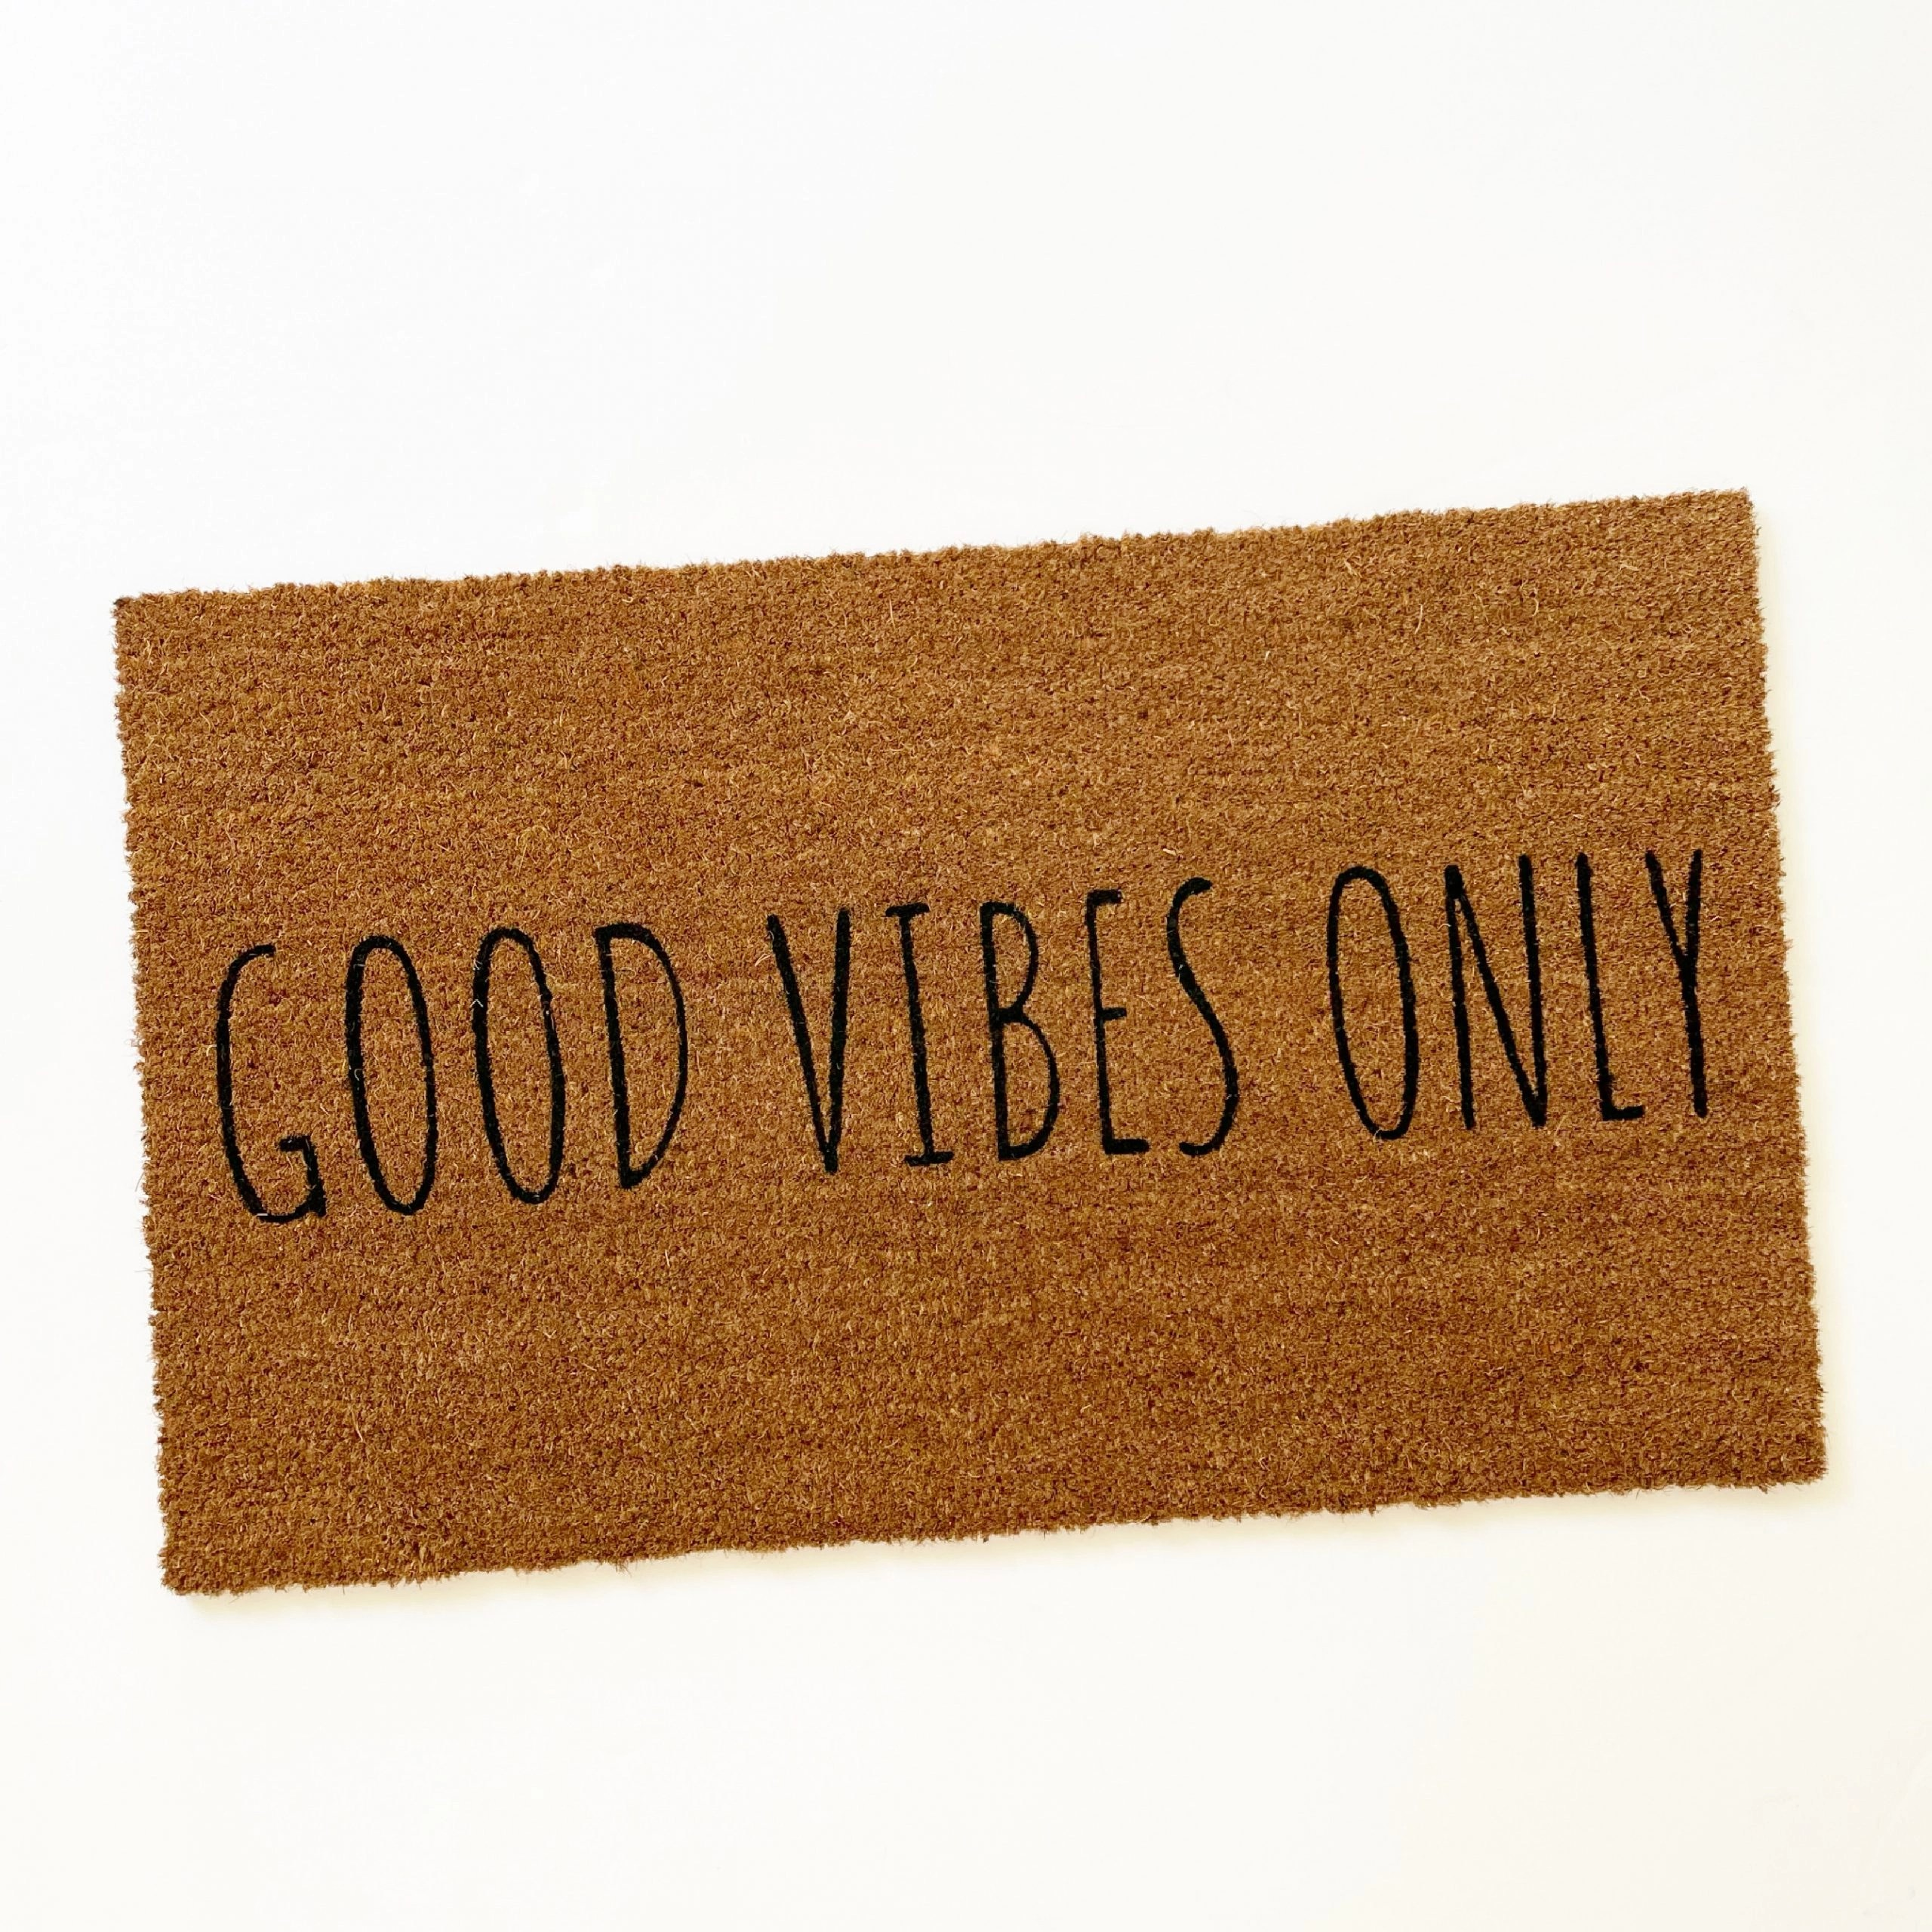 Mainstays good vibes only coir doormat